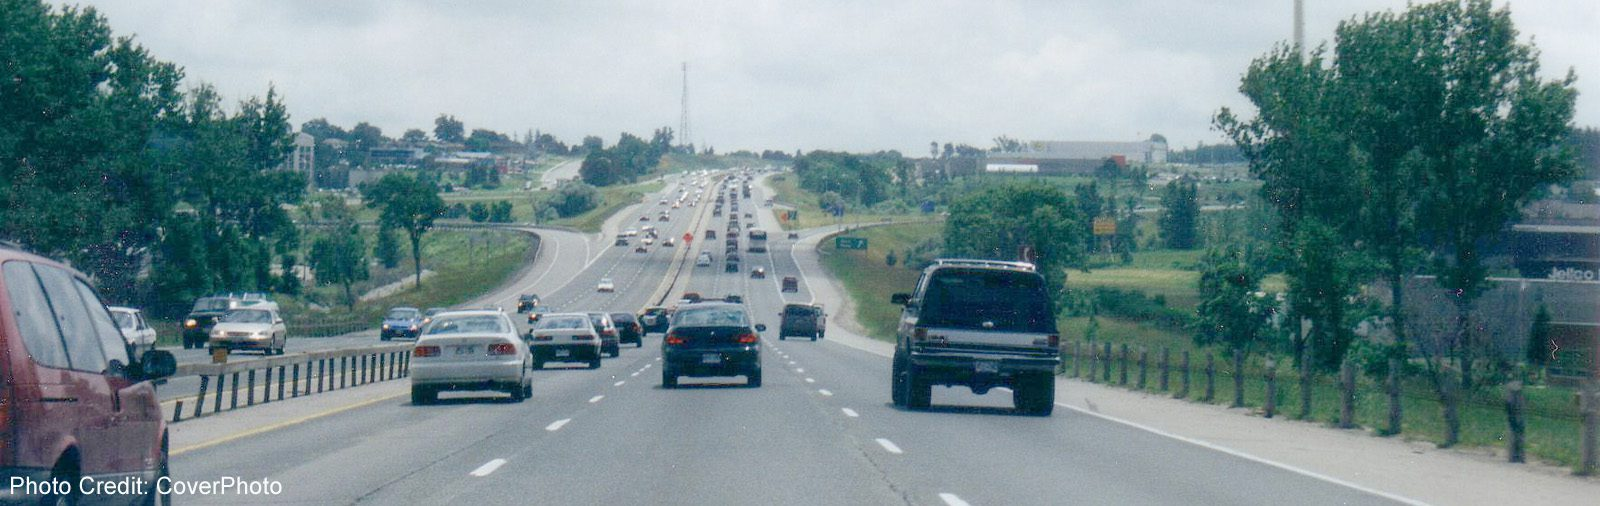 Highway 400 South Of Barrie 2 -sliver (CoverPhoto)